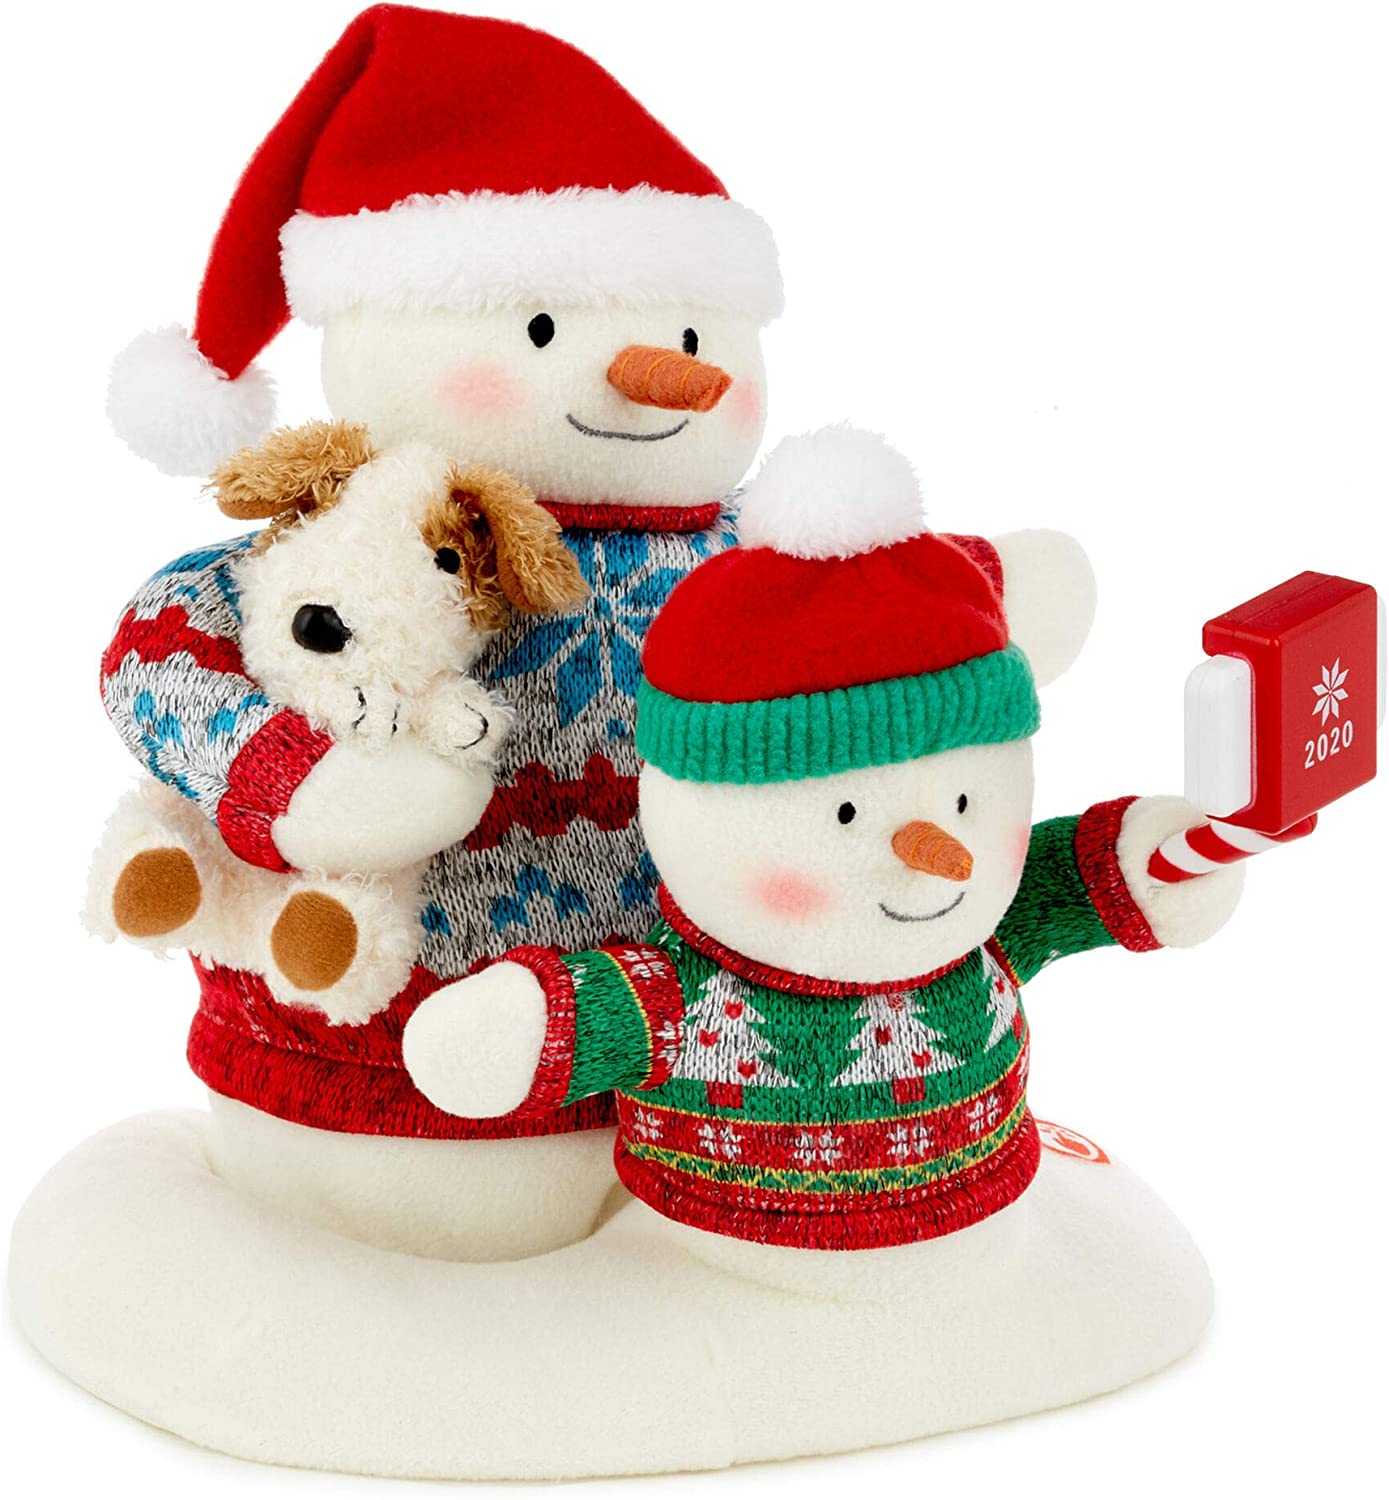 Hallmark Cozy Christmas Selfie Techno Snowman 2020 Singing Stuffed Animal with Light and Motion, 9.5""